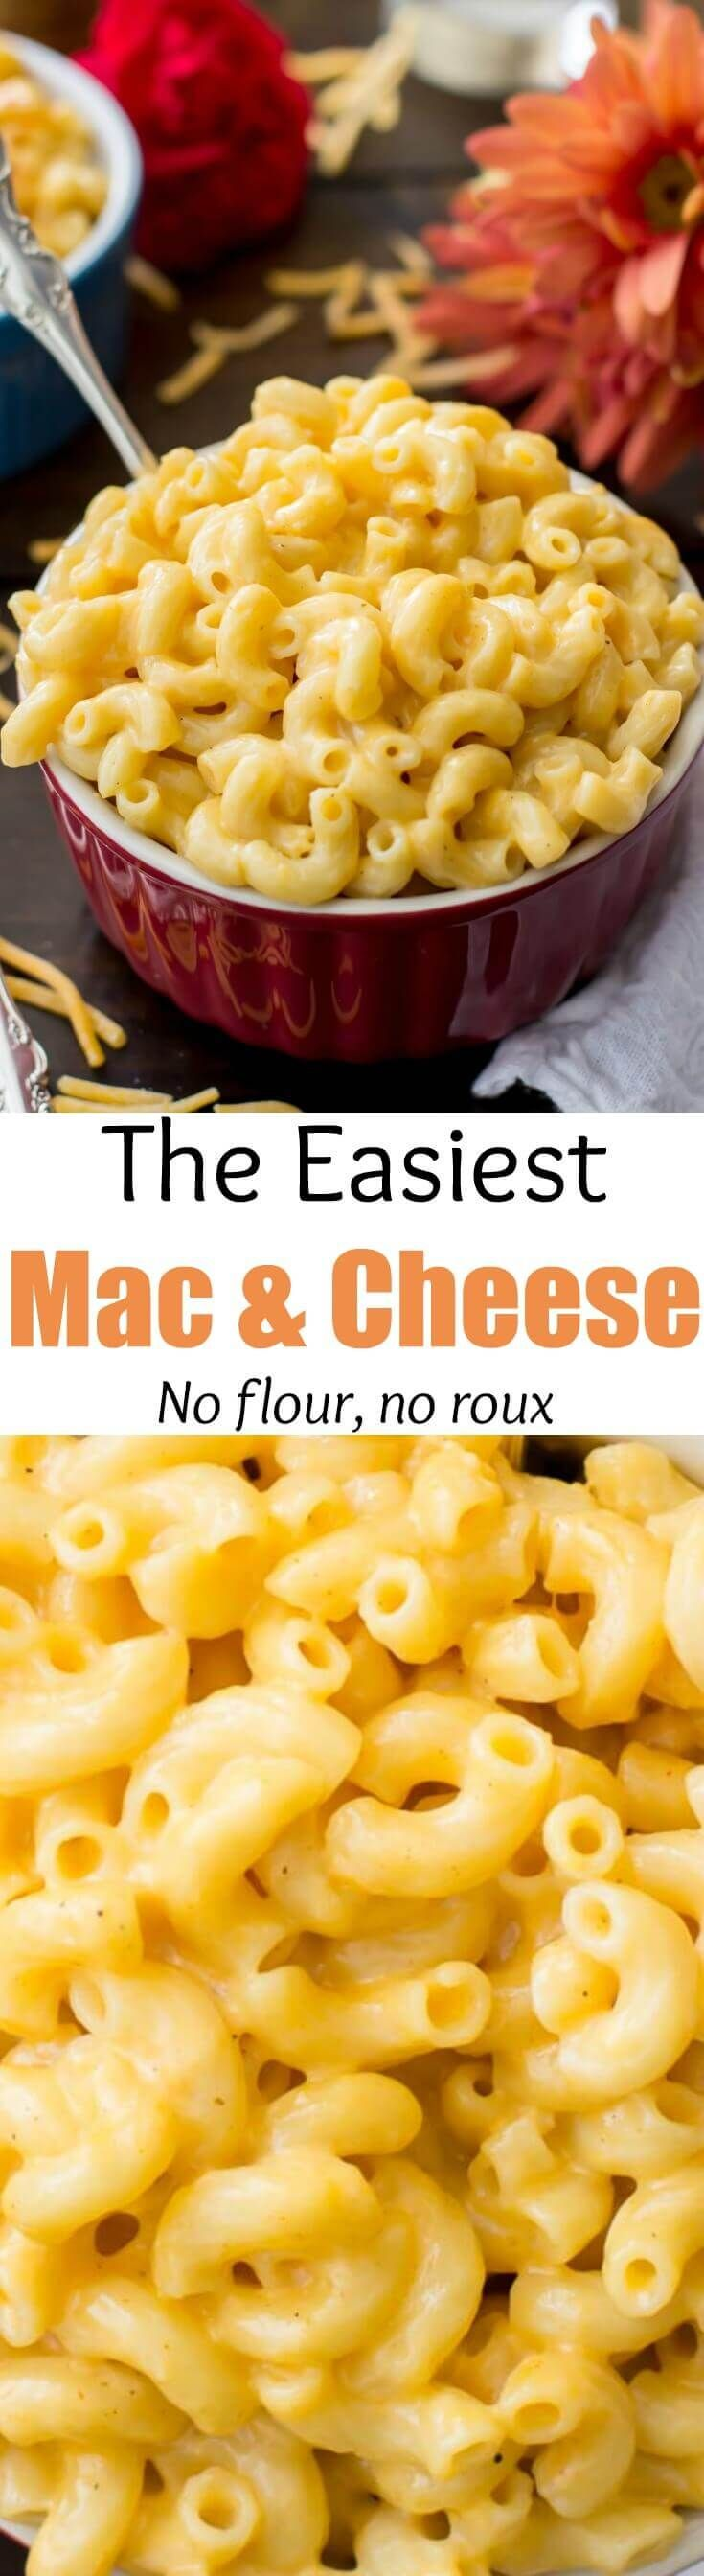 how to make easy mac and cheese without flour